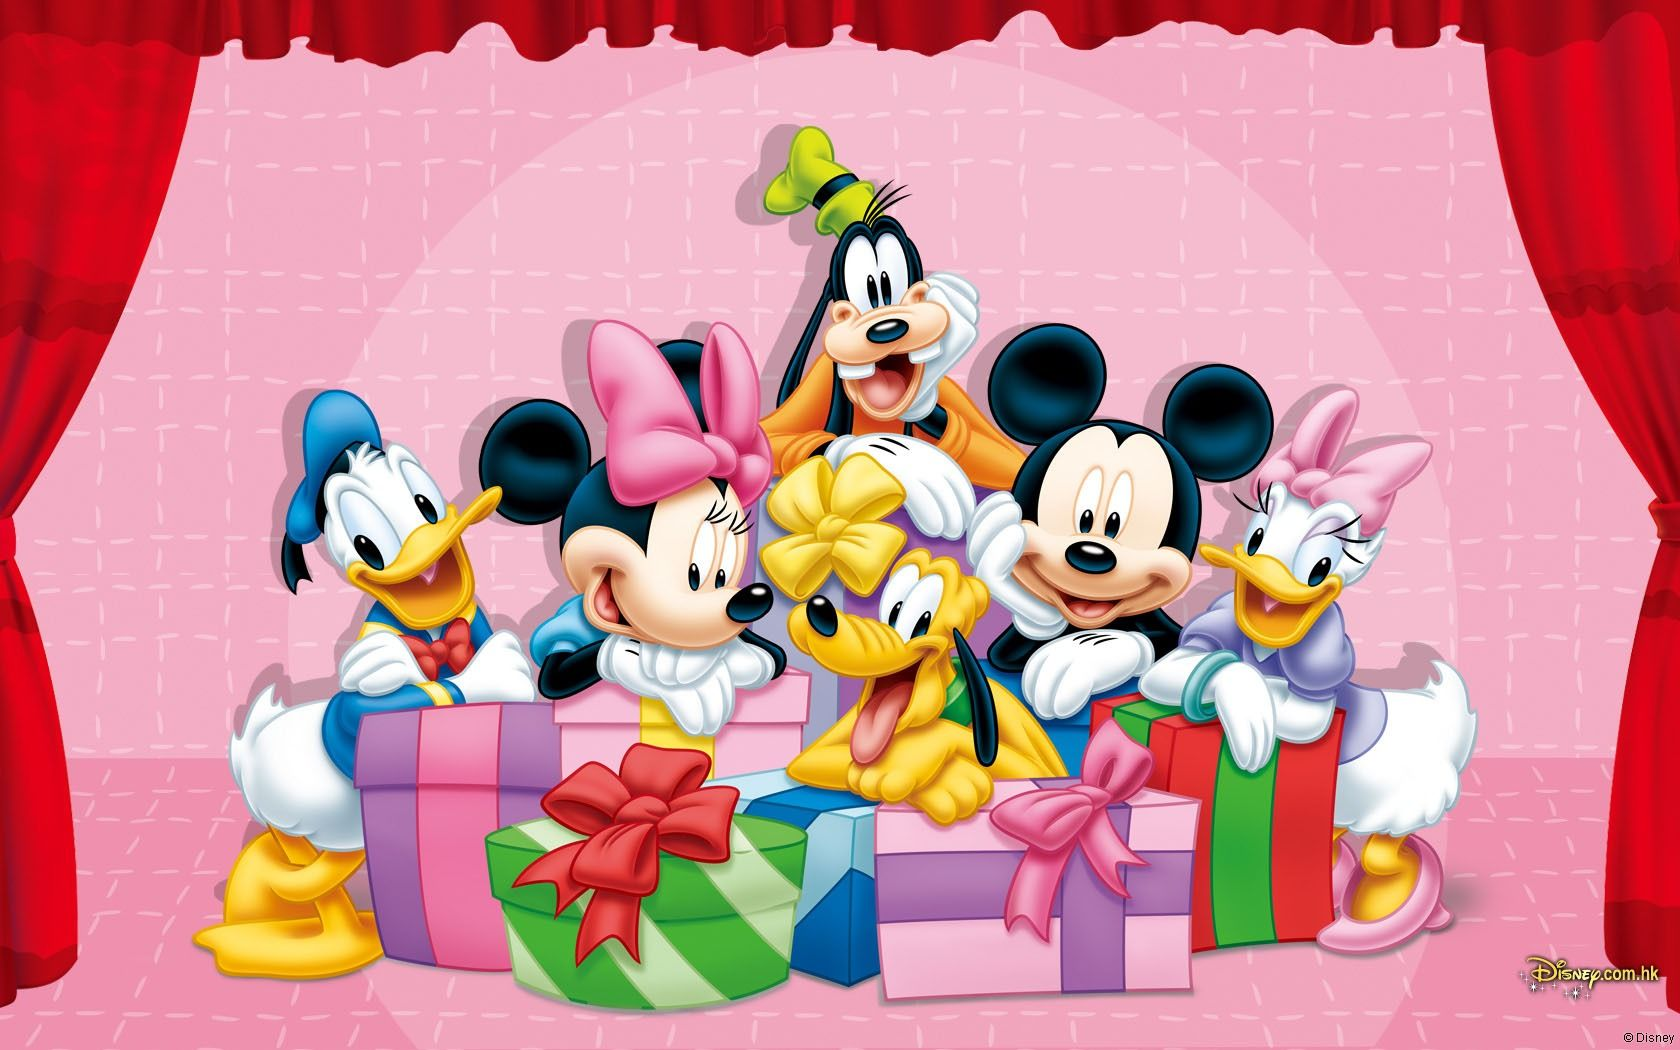 Minnie Mouse Wallpaper For Bedroom Mickey Mouse Yahoo Image Search Results Mickey Mouse Friends